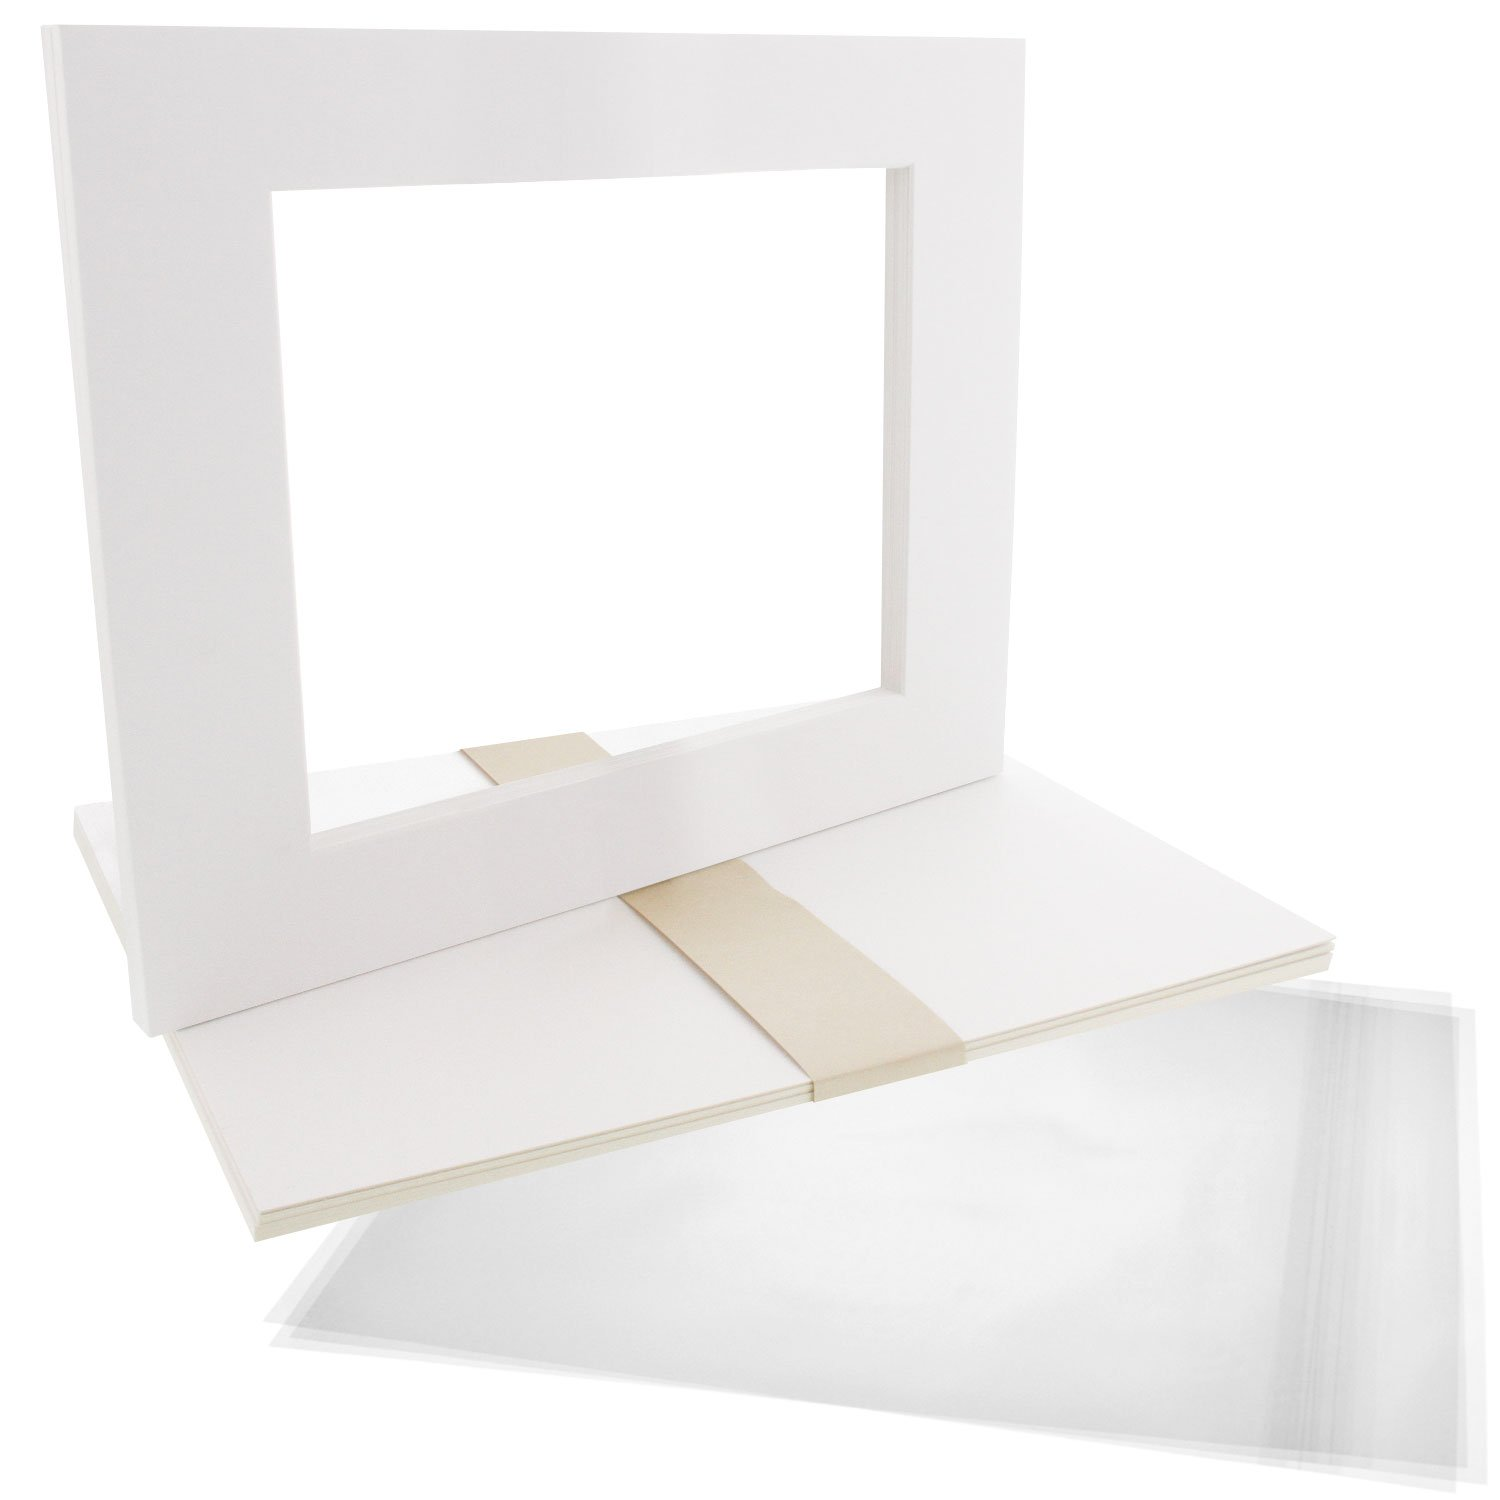 US Art Supply Art Mats Acid-Free Pre-Cut 16x20 White Picture Mat Matte Sets. Includes a Pack of 5 White Core Bevel Cut Mattes for 11x14 Photos, Pack of 5 Backers & 5 Clear Sleeves Bags